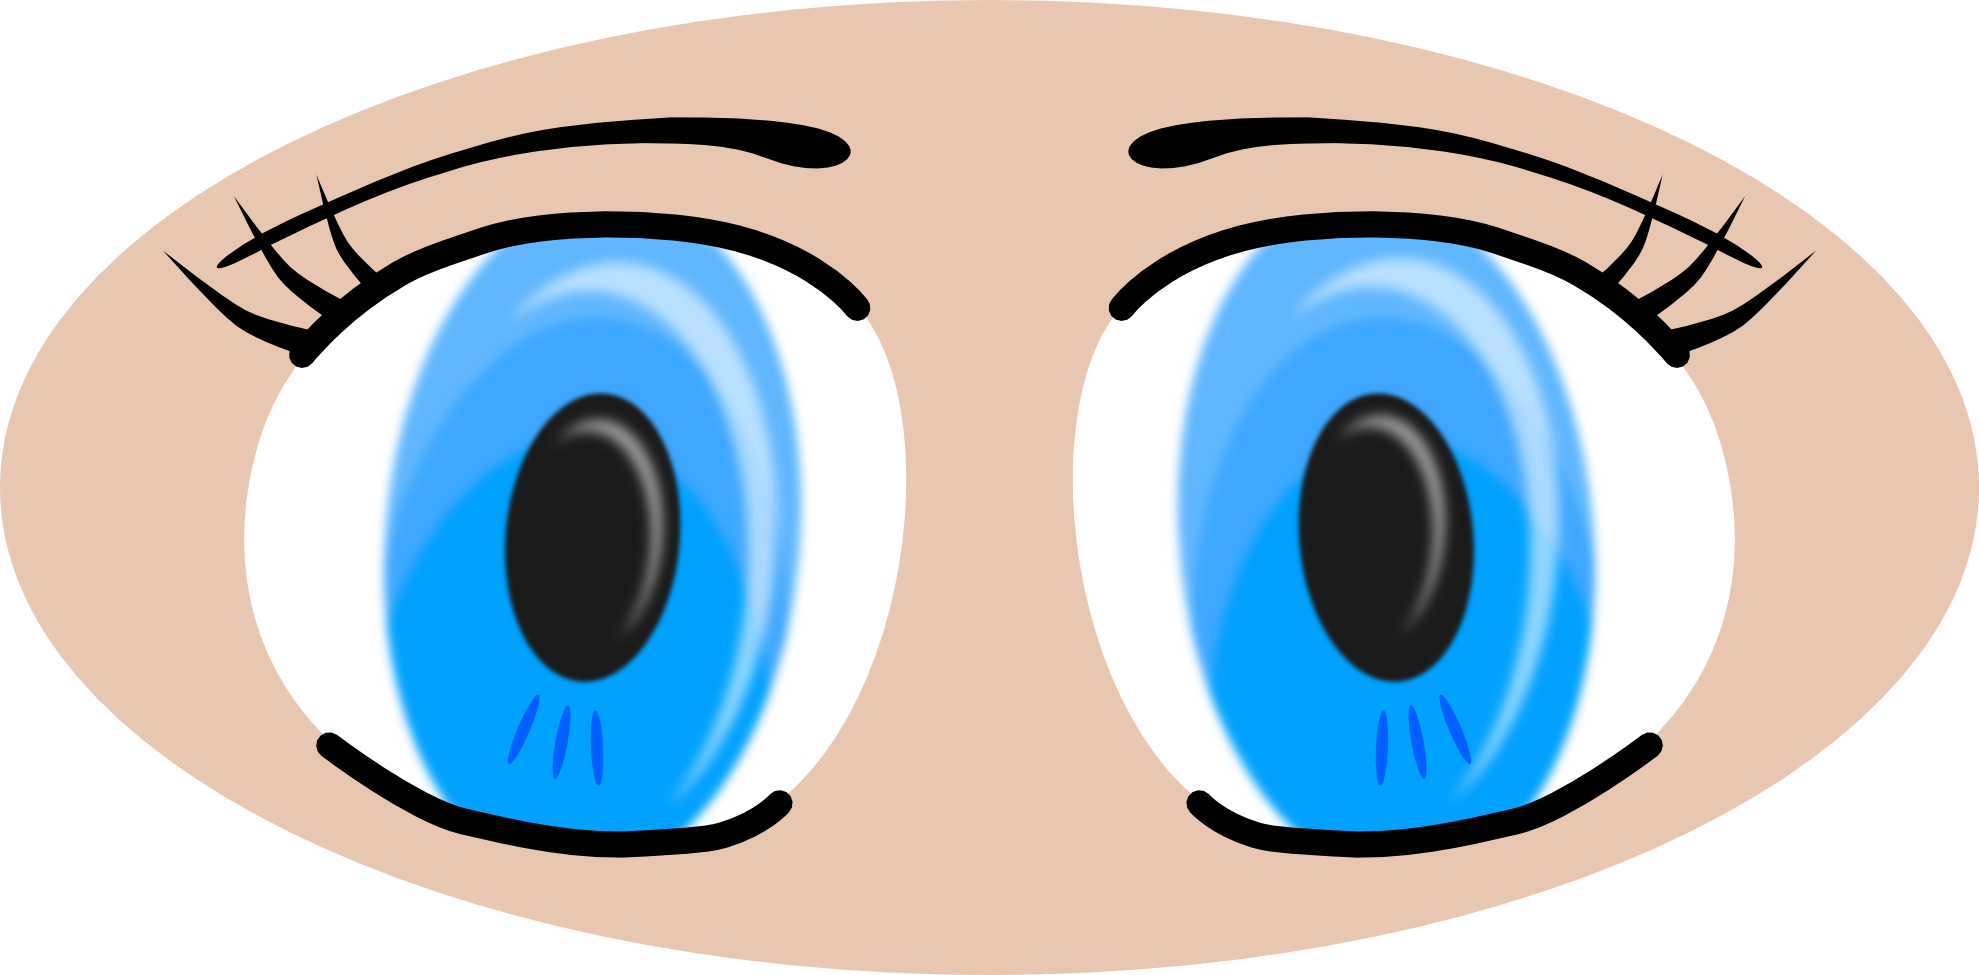 Eyes clipart #4, Download drawings